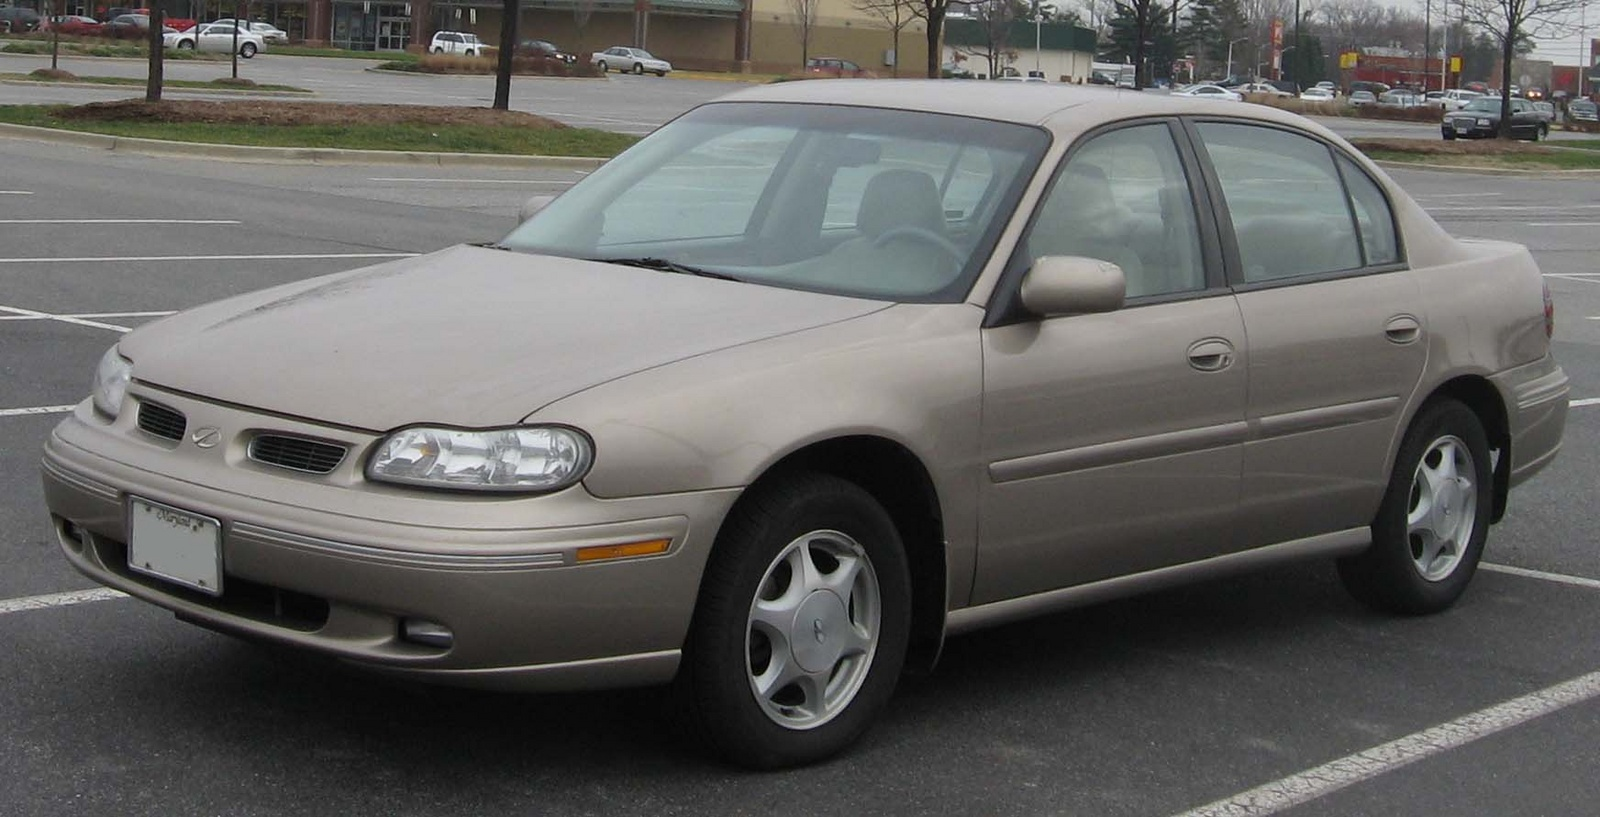 Picture of 1999 Oldsmobile Cutlass 4 Dr GLS Sedan